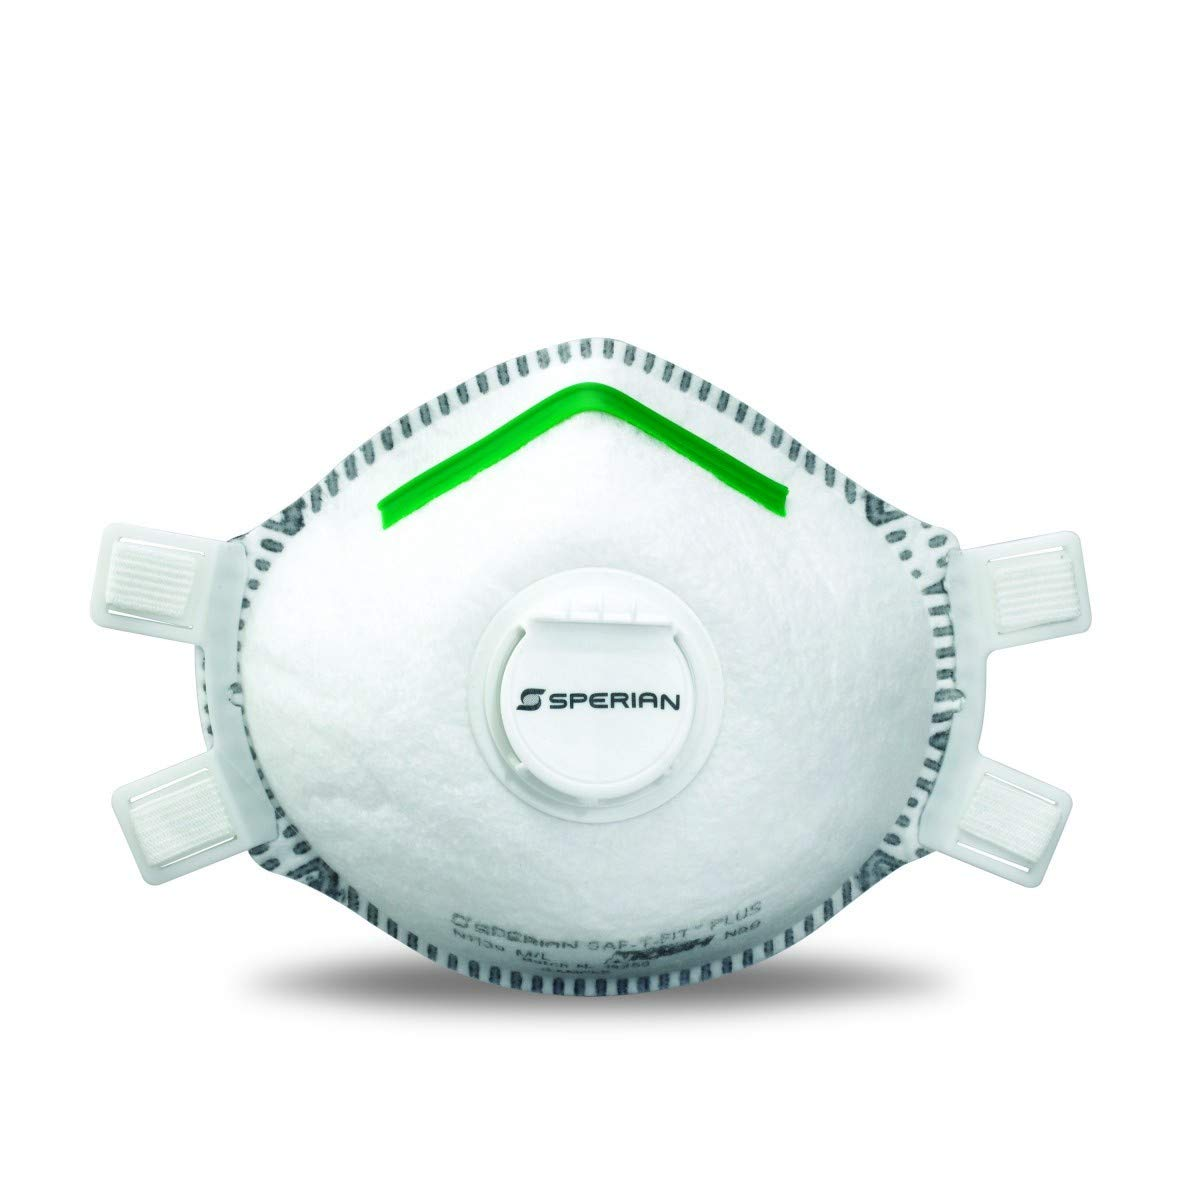 Honeywell 14110403 N1139 N99 SAF-T-FIT Plus Particulate Respirator with Full Face Seal and Valve, Molded Cup, Medium/Large (Pack of 10) by Honeywell